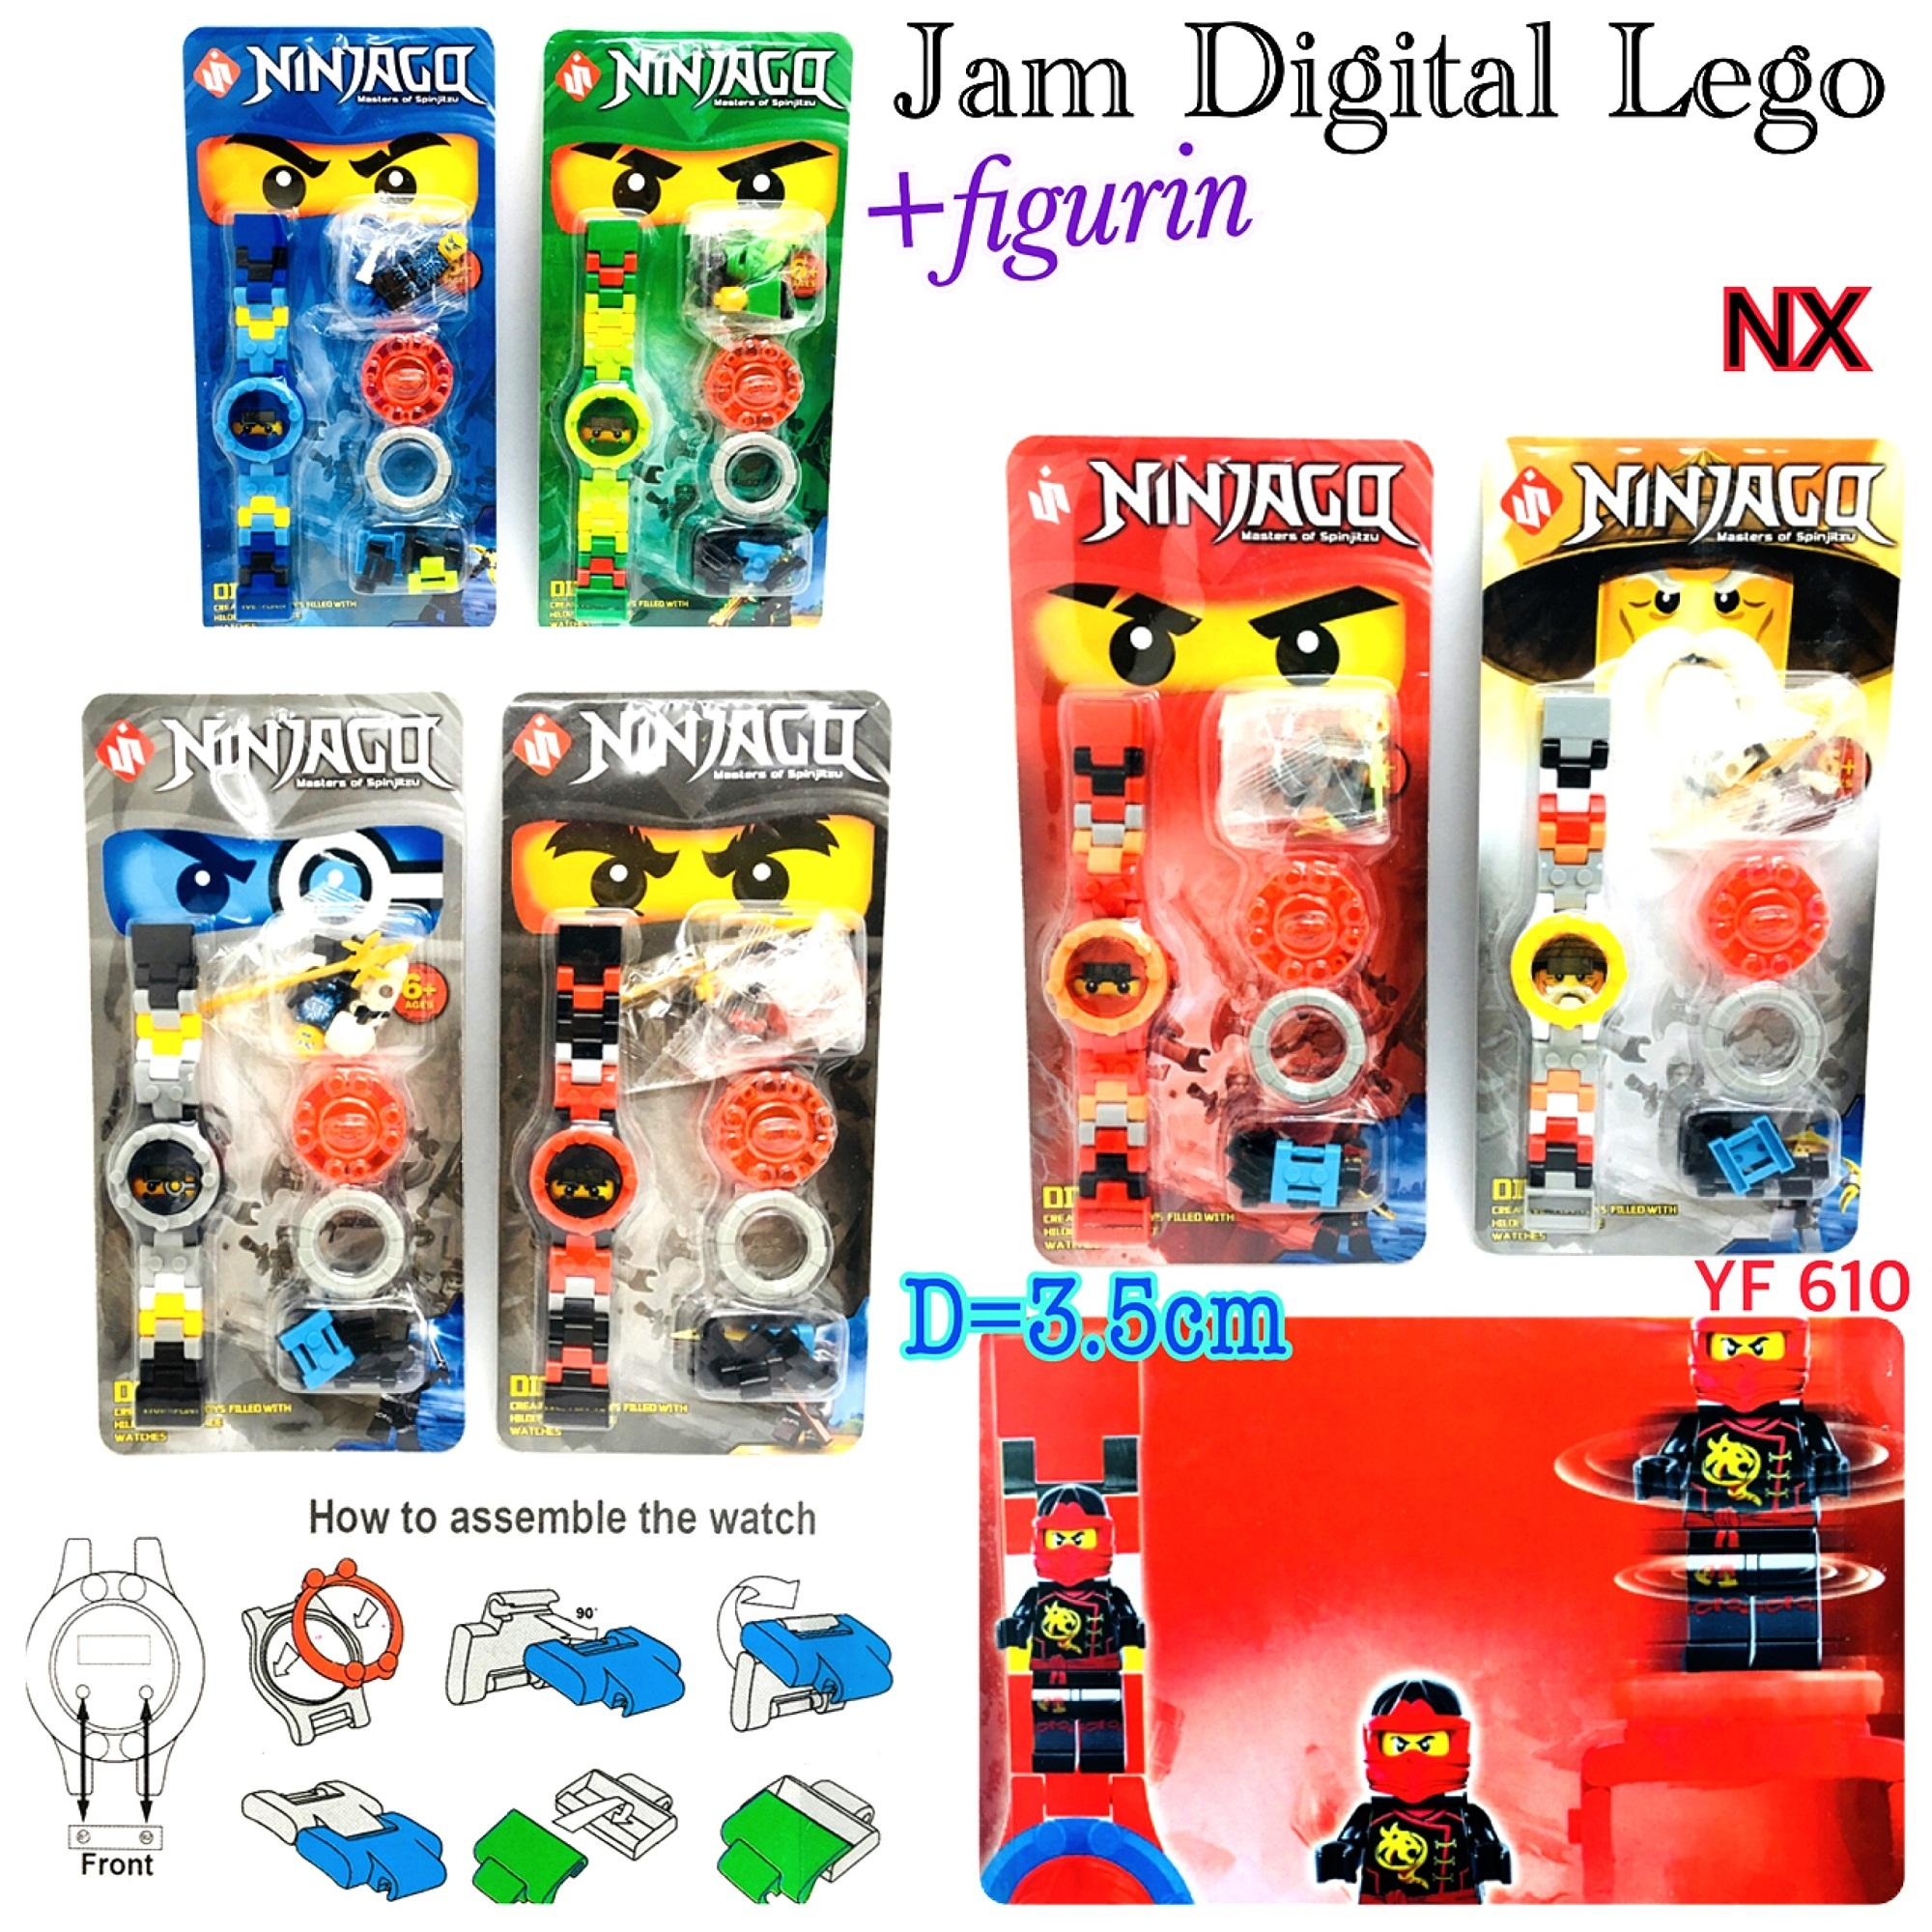 Buy Sell Cheapest Topeak Ninja Plus Best Quality Product Deals Cakram Depan High 250 Fi Jam Tangan Digital Lego Figurin Go